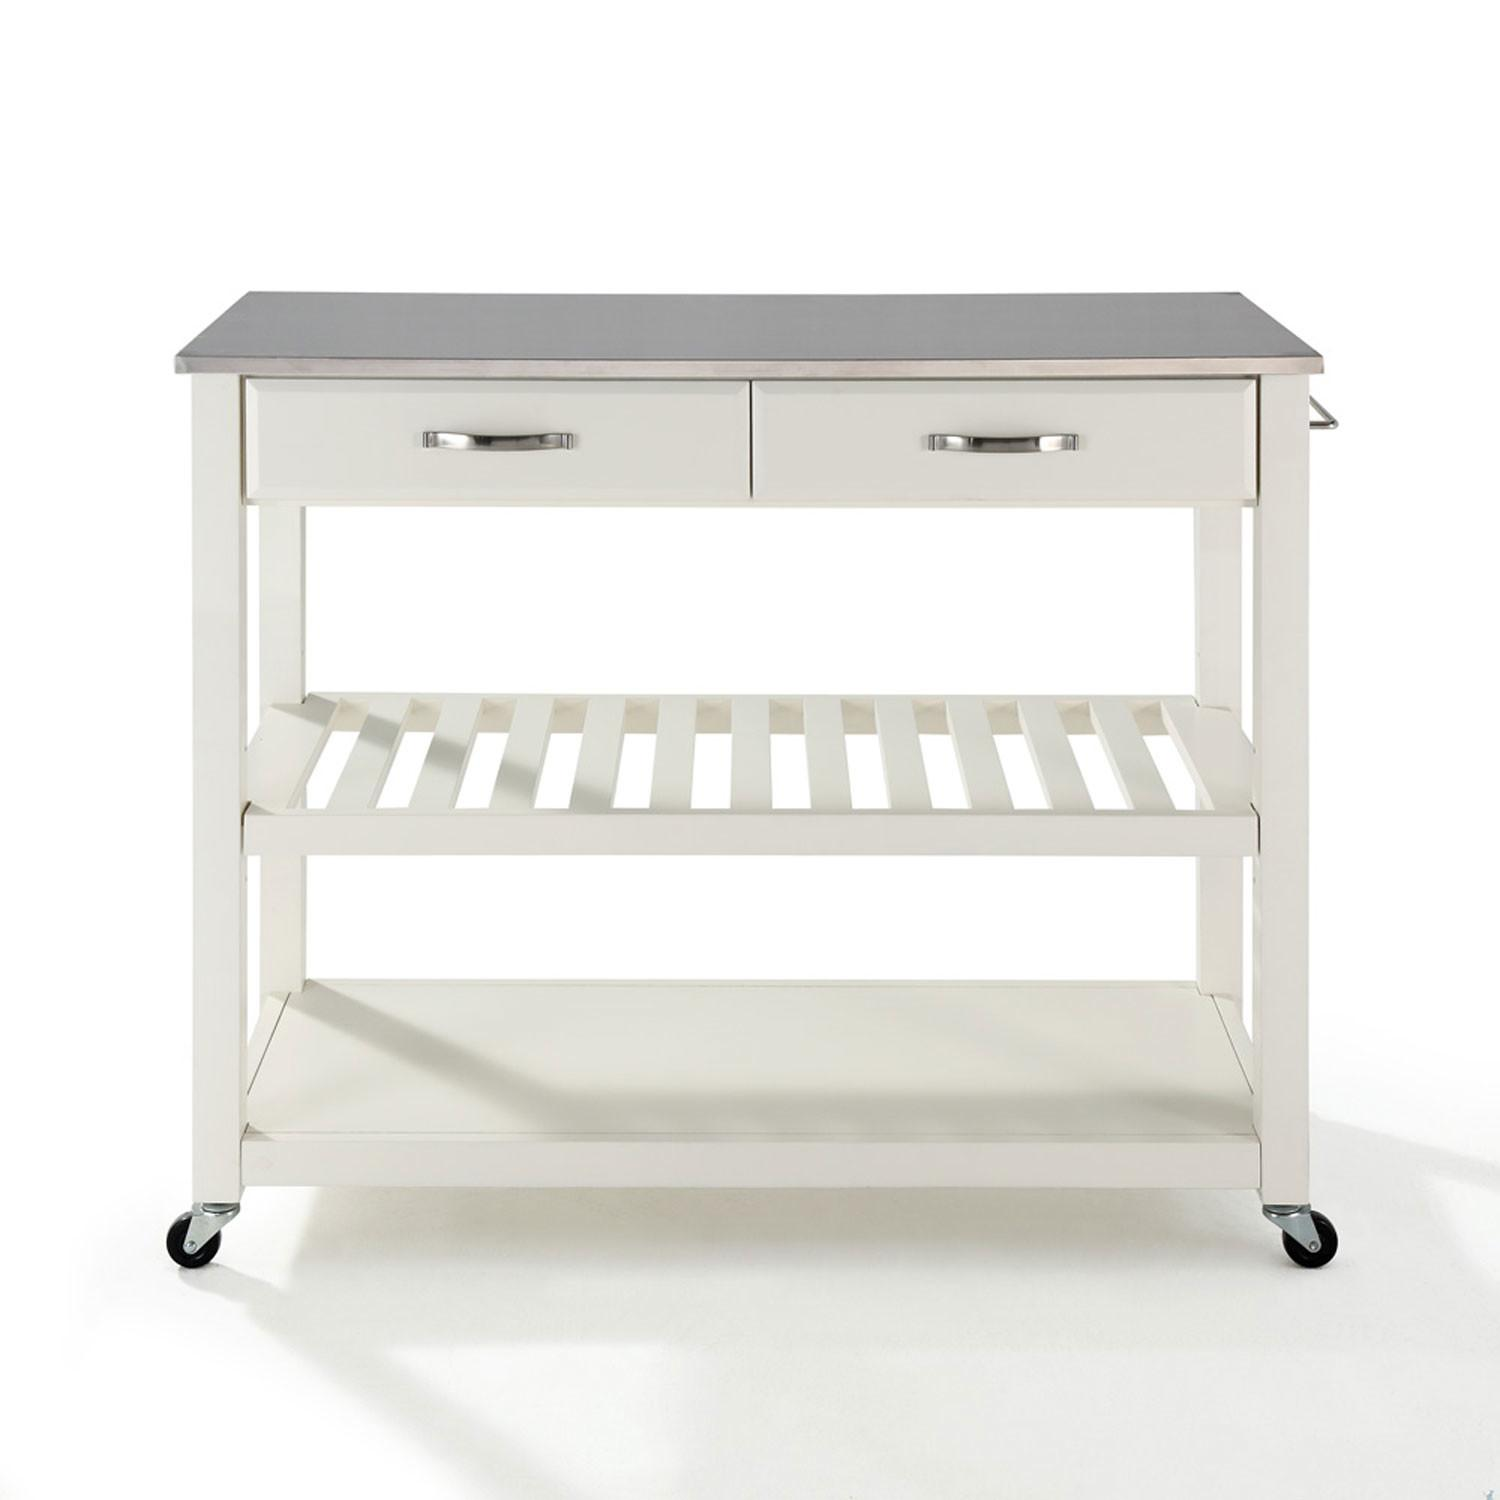 Stainless Steel Top Kitchen Cart Island Optional